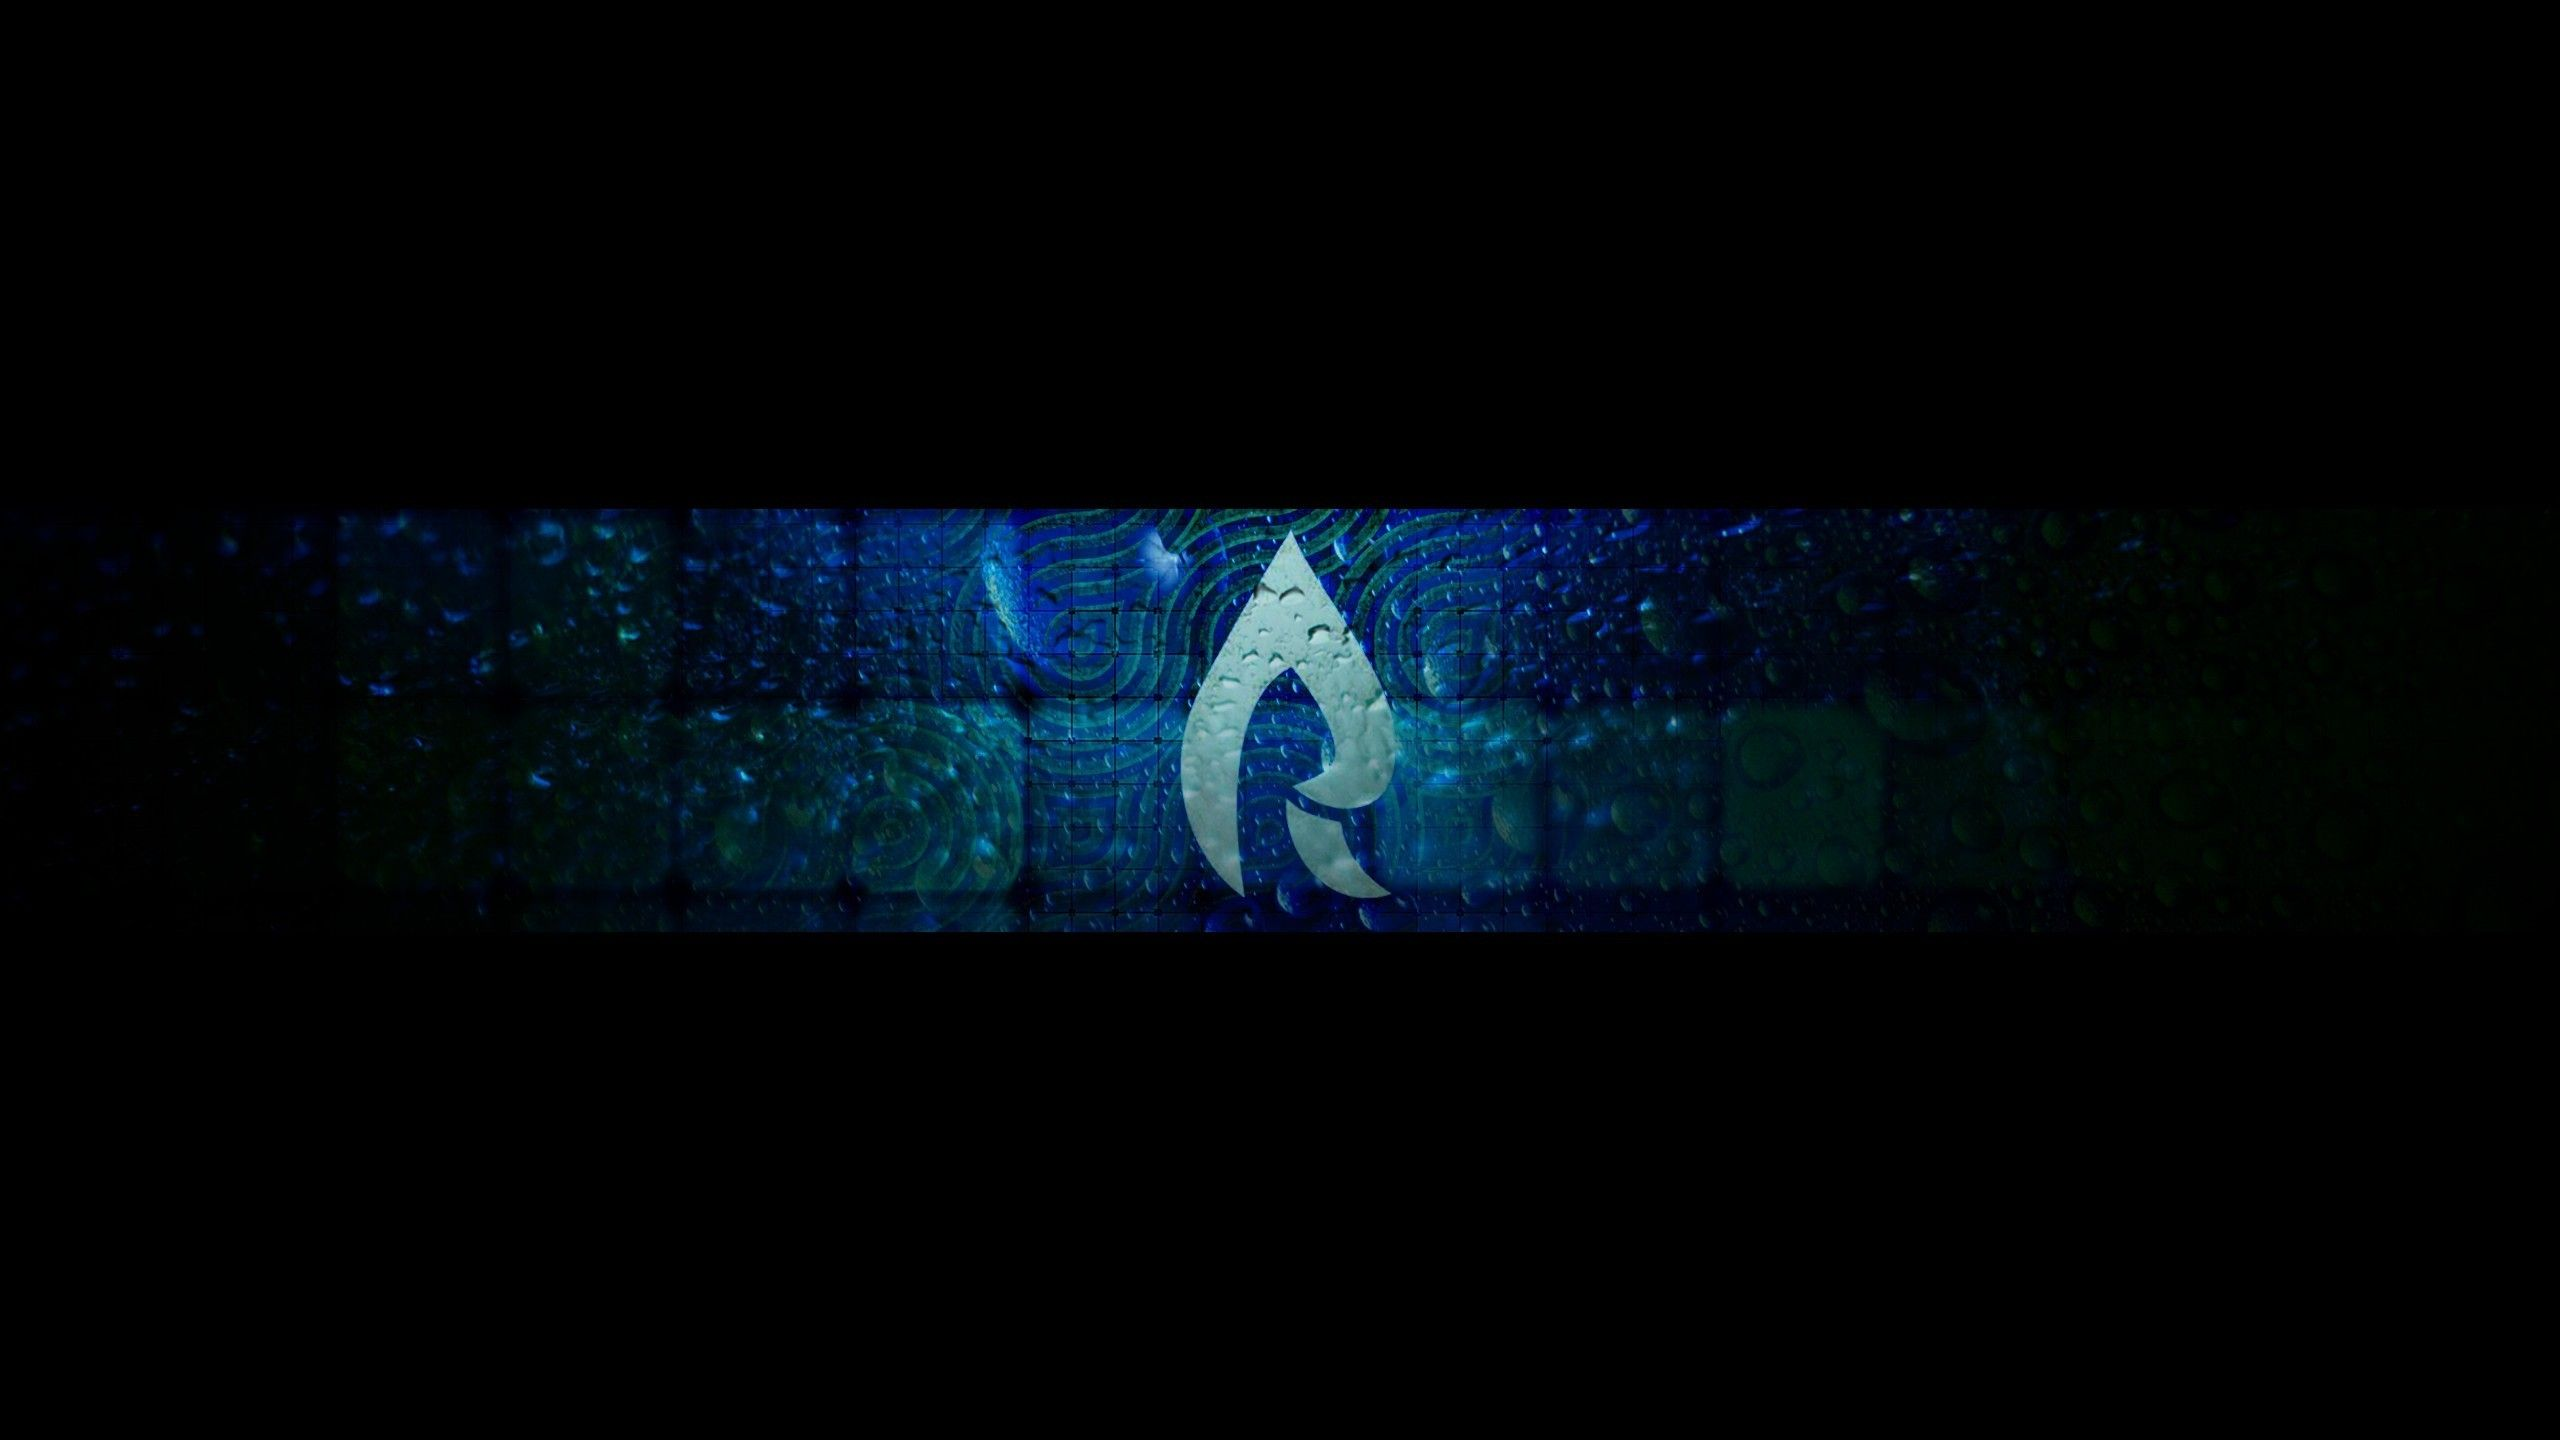 YouTube Banner Wallpapers   Top YouTube Banner Backgrounds 2560x1440